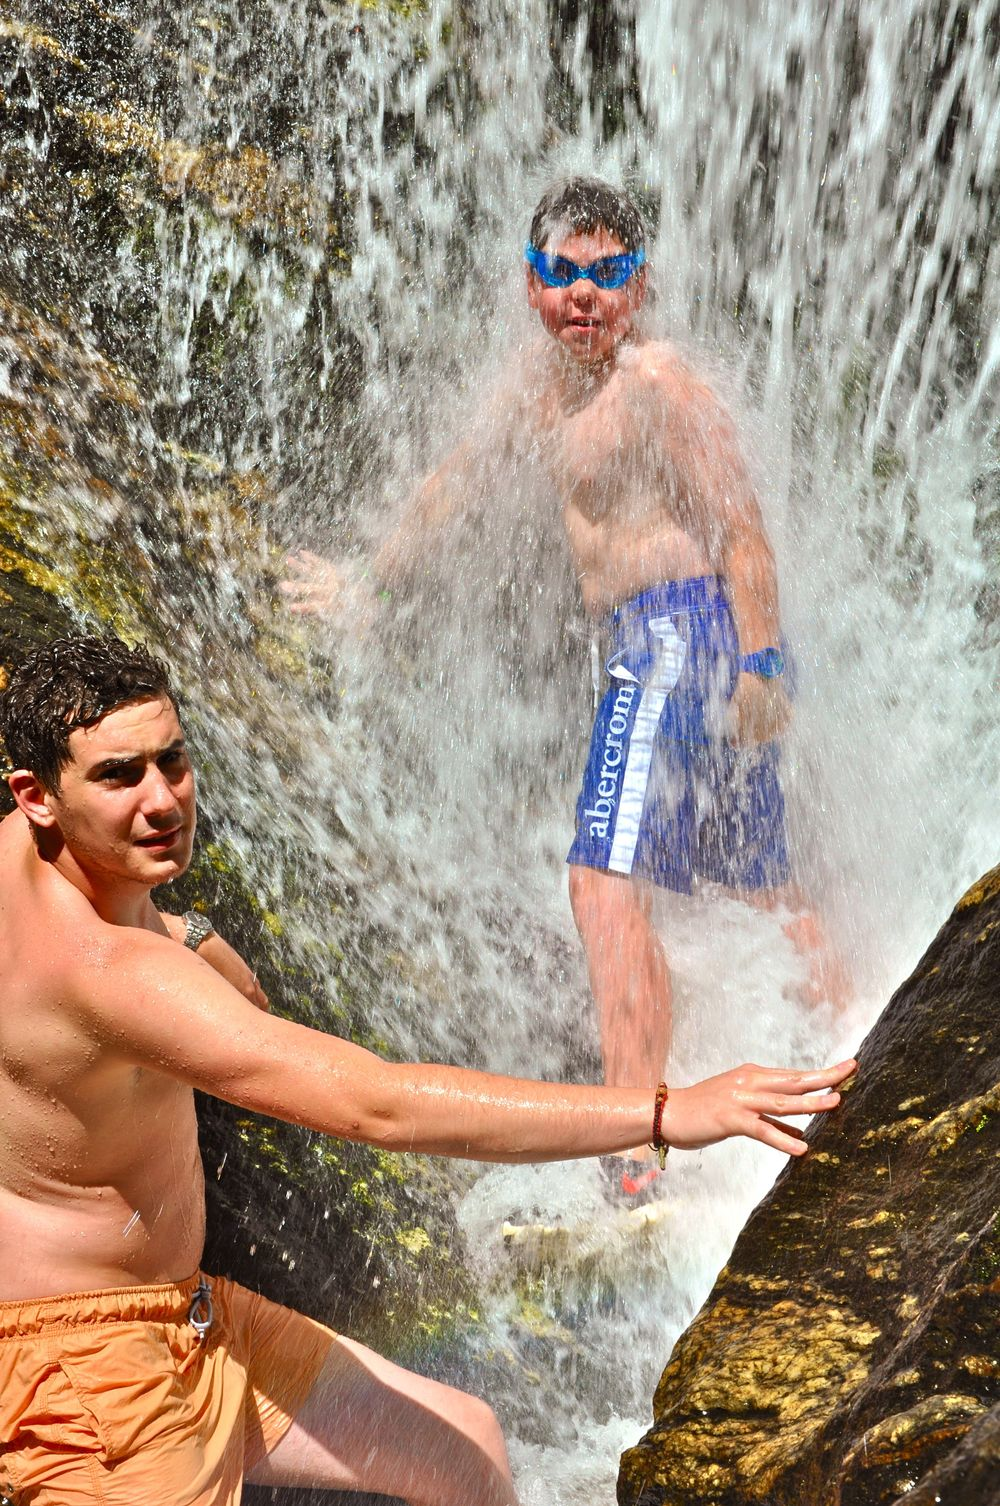 forget-washing-your-hair-winston-took-a-full-shower-in-the-tom-huskins-waterfall.jpg